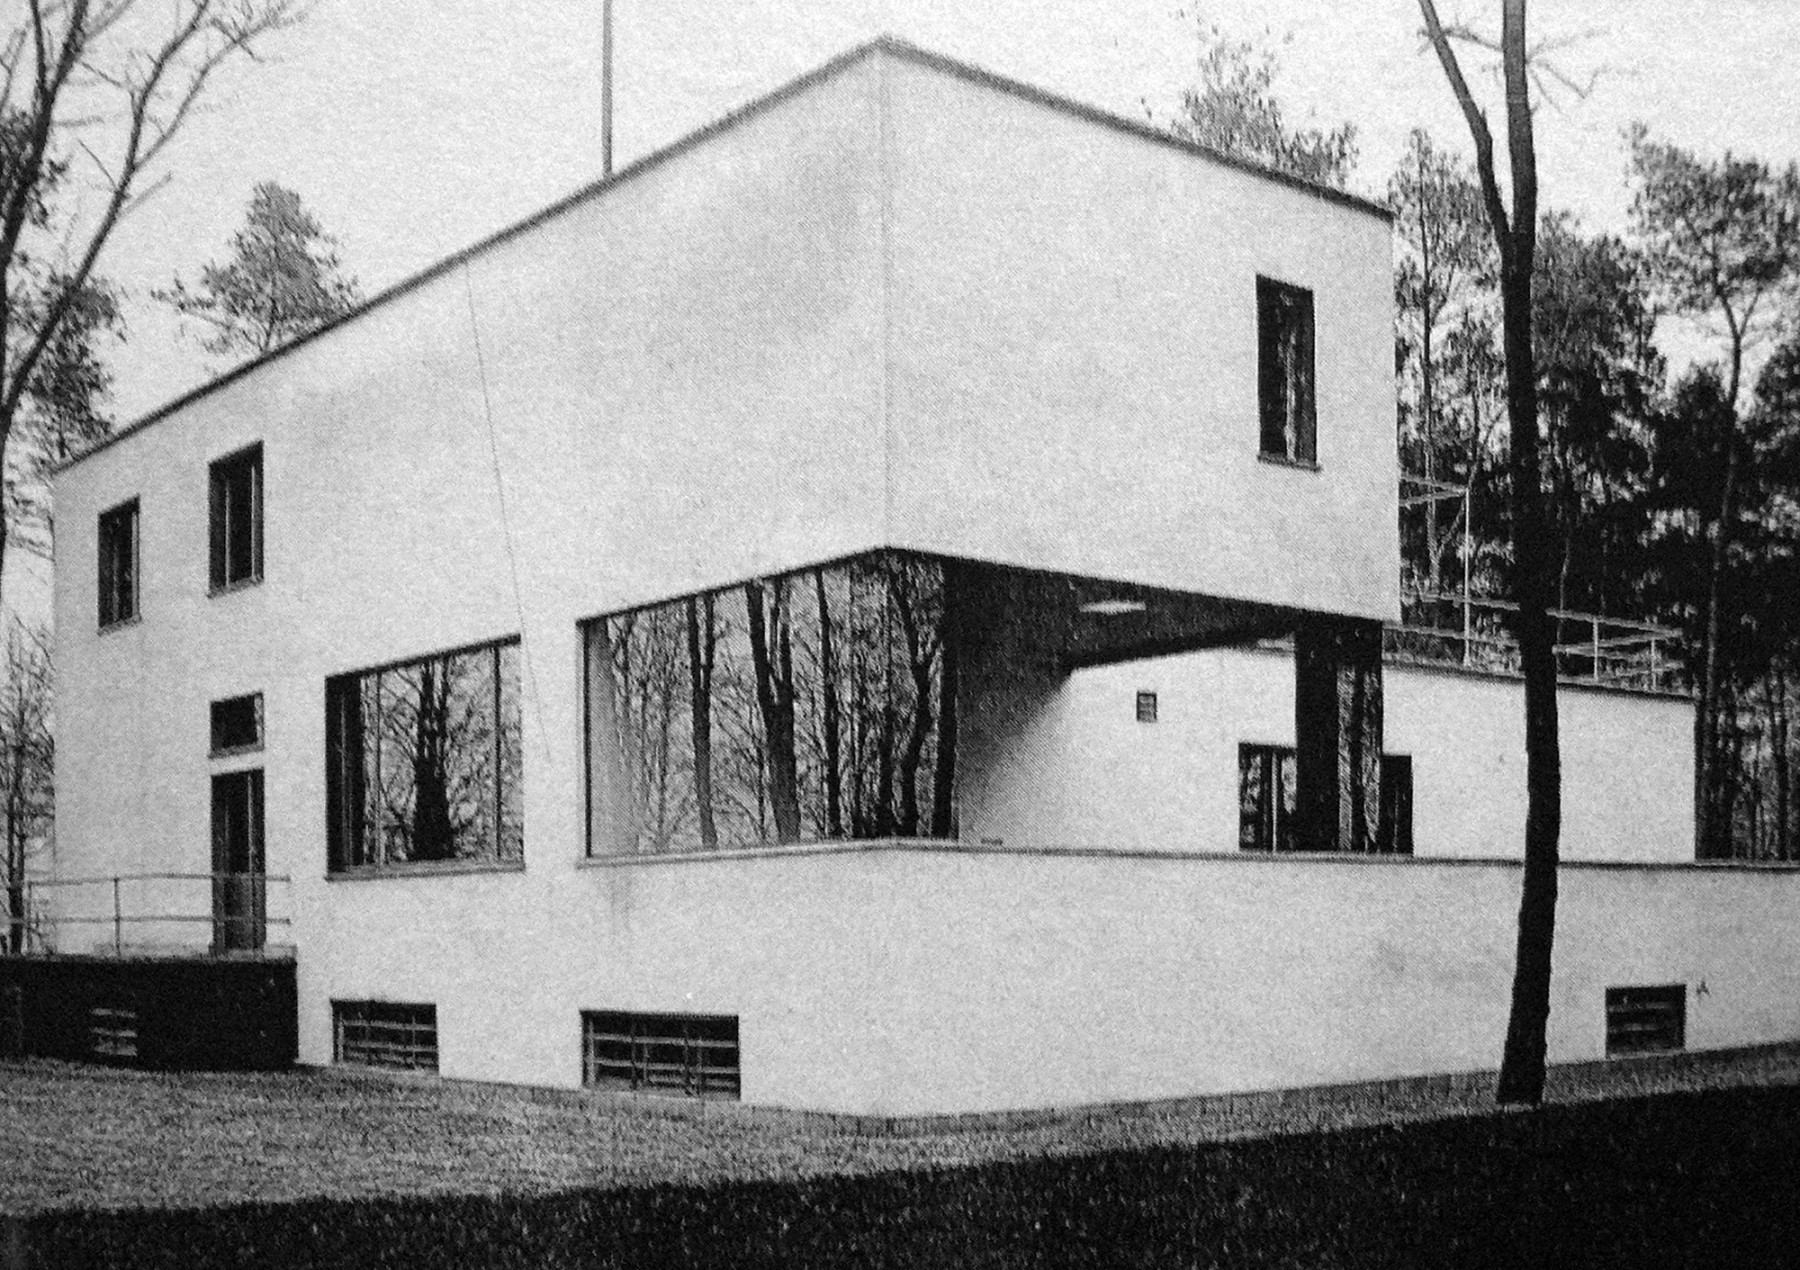 Walter-Gropius-Moholy-Nagy-Bauhaus-Building-Masters-Houses-space-Centre-short-list-performance-competition-Jamie-Fobert-architects-9